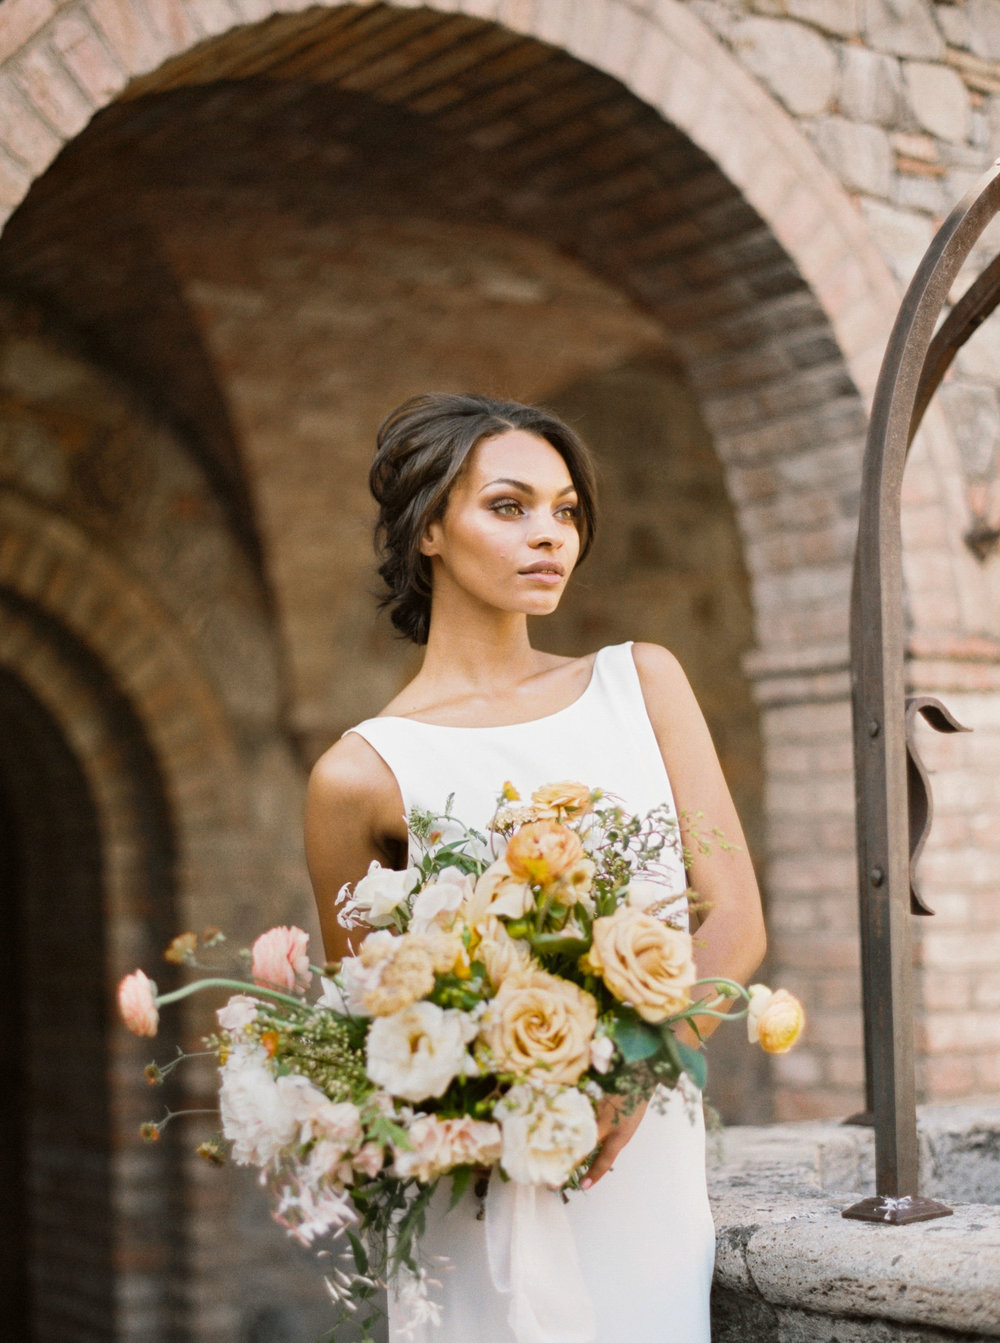 005napa_wedding_photographer_and_videographer_destination_and_elopement_photography.jpg